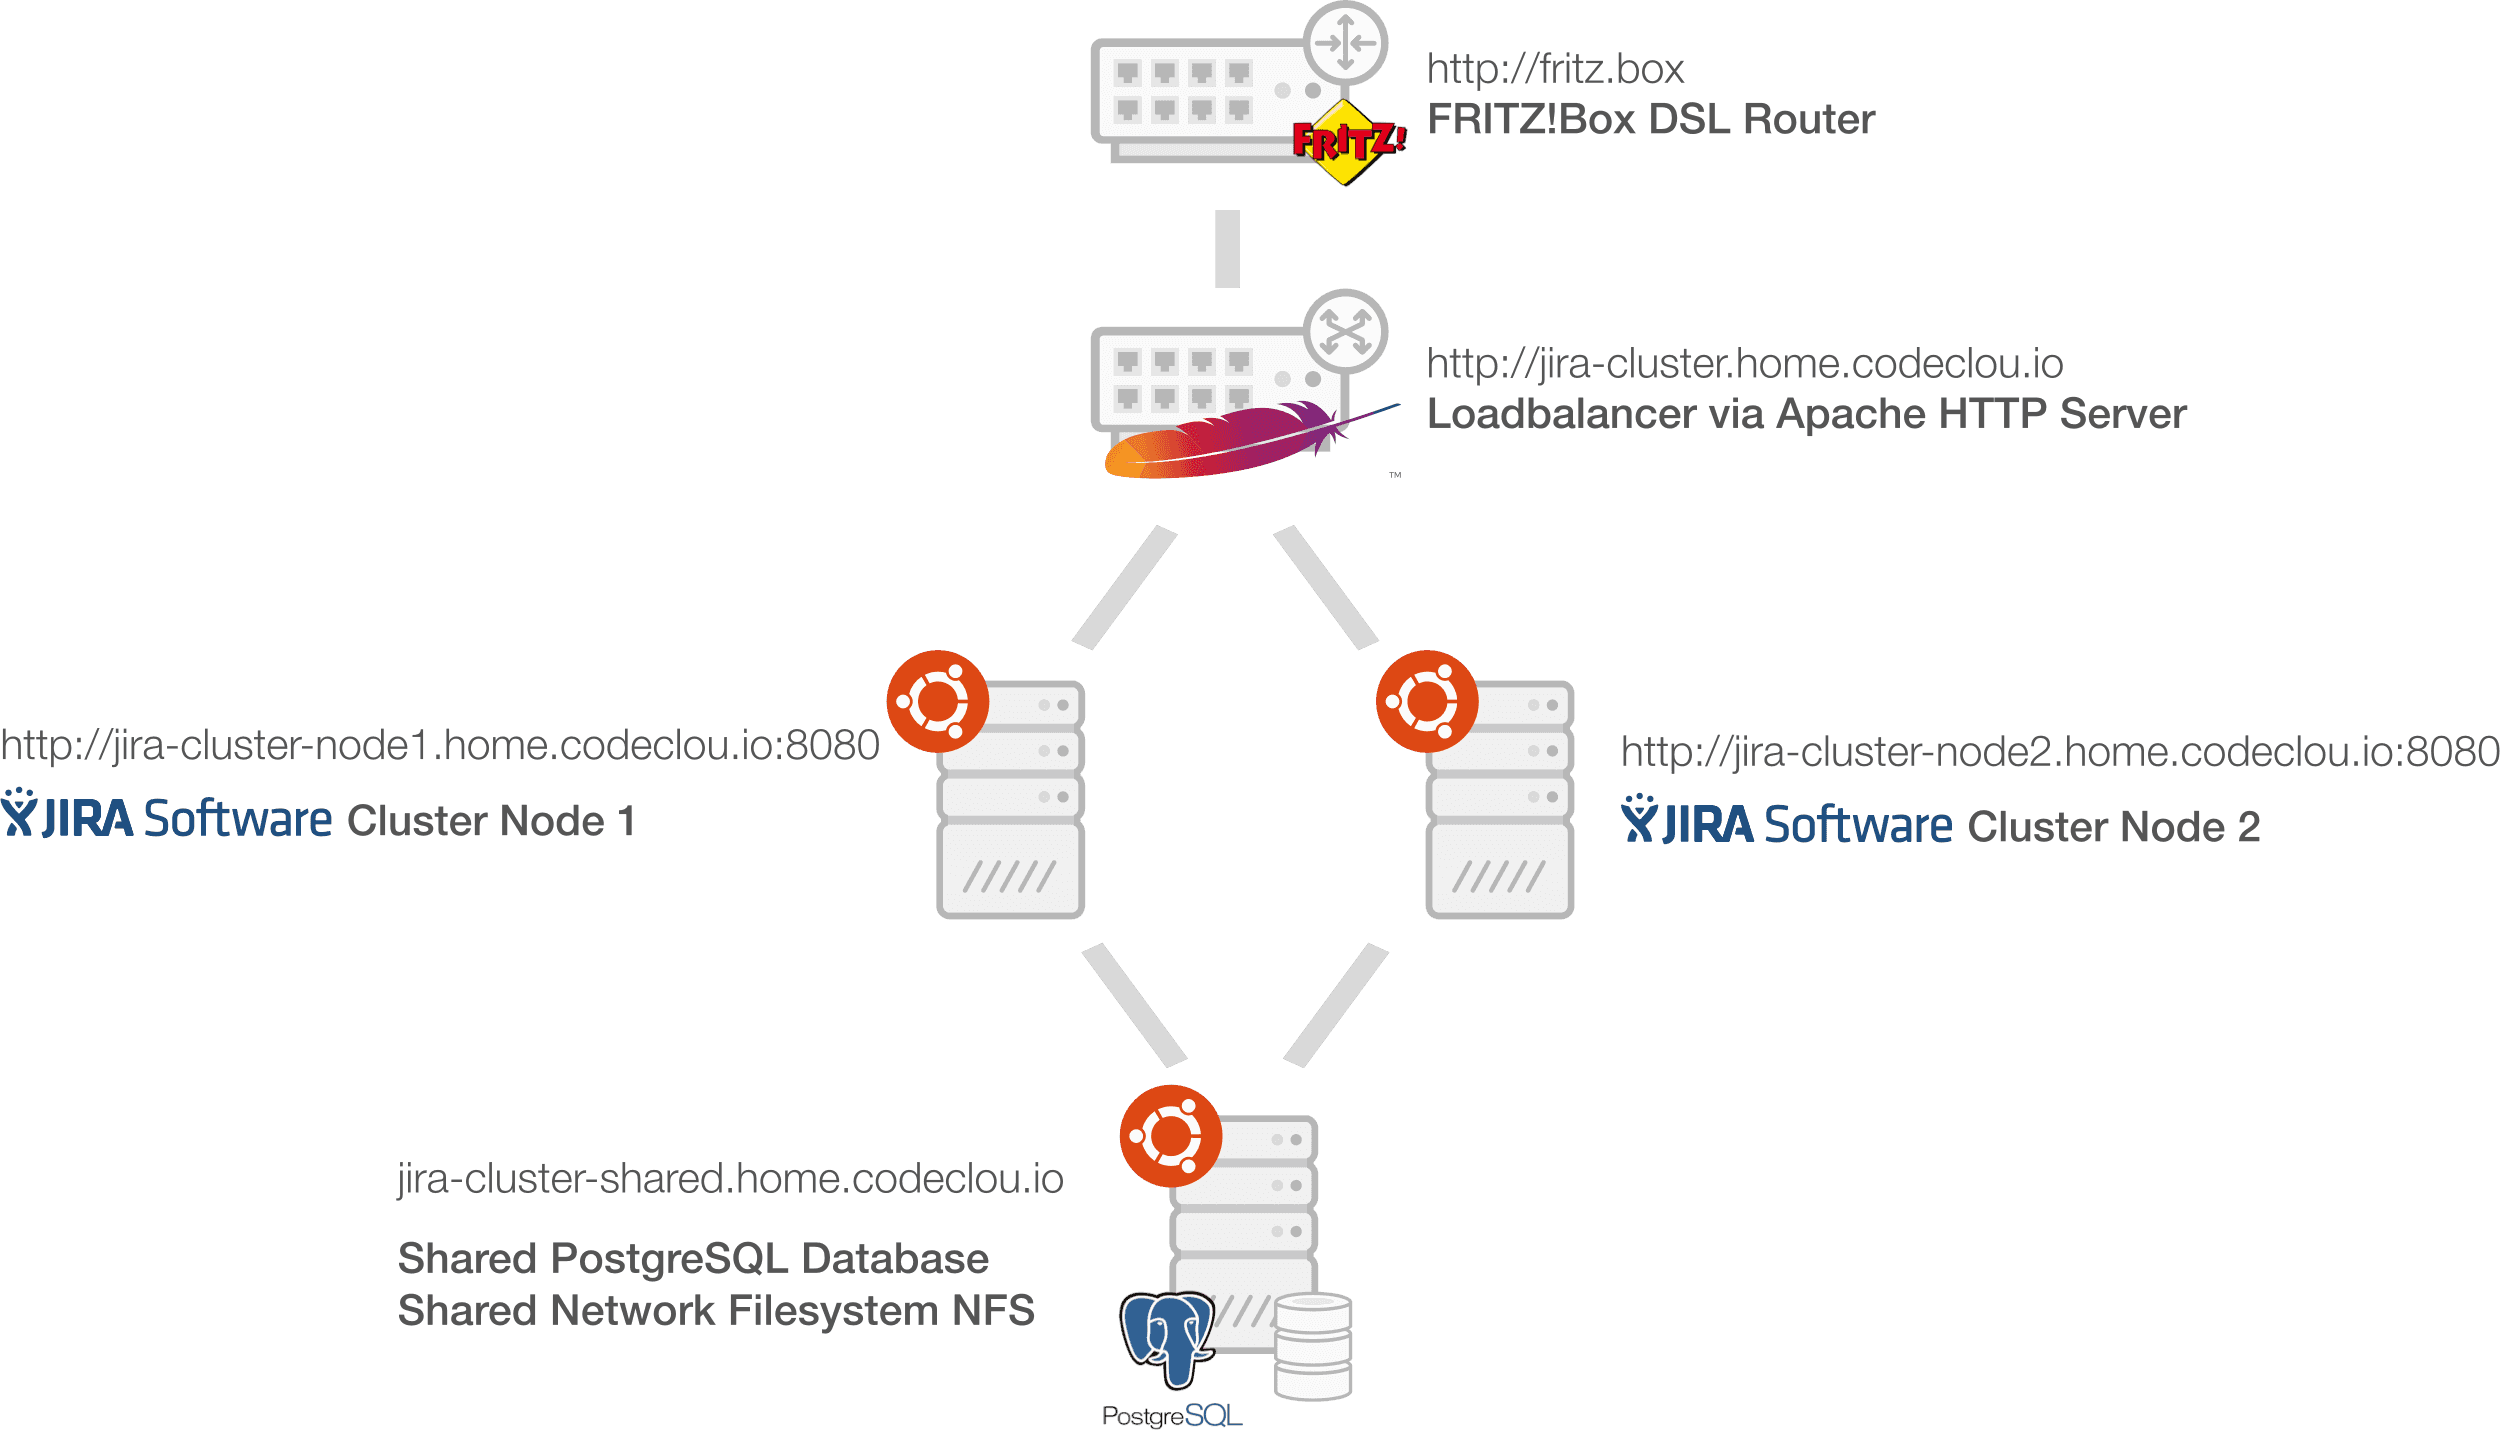 JIRA Data Center Cluster Network Diagram